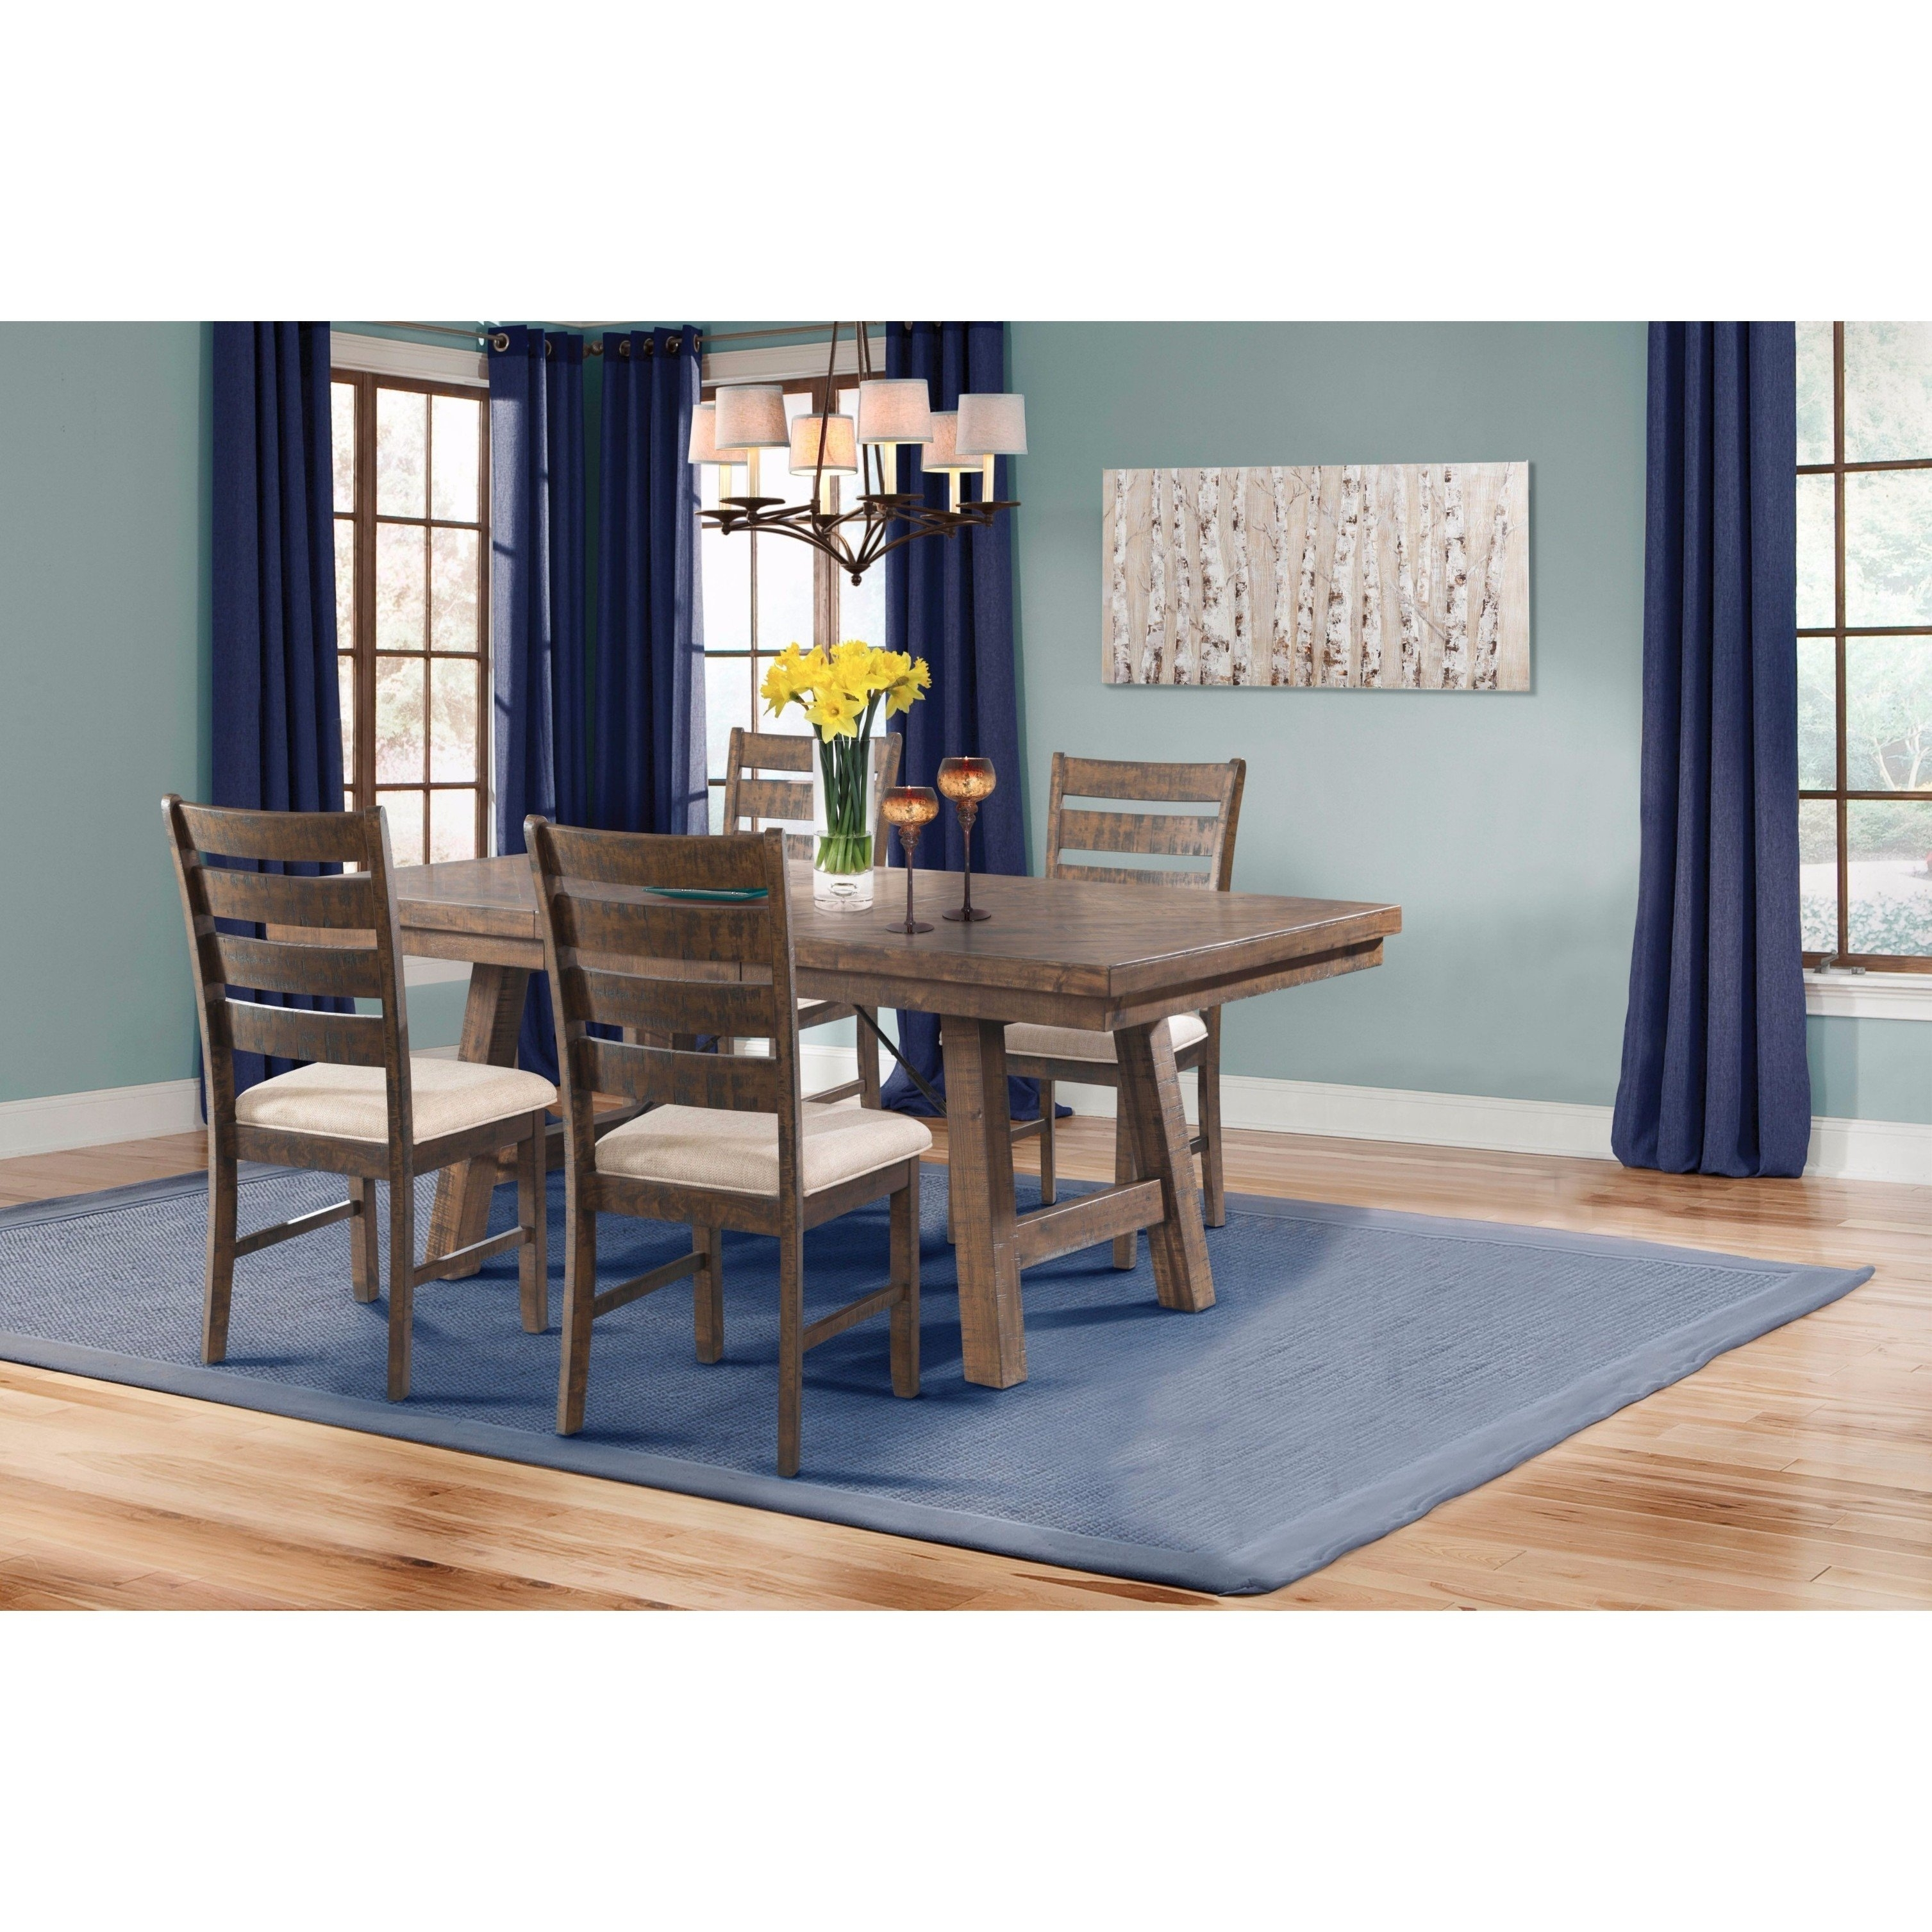 Shop Picket House Furnishings Dex 5Pc Dining Set Table, 4 Ladder Inside Most Recently Released Caden 7 Piece Dining Sets With Upholstered Side Chair (View 12 of 20)